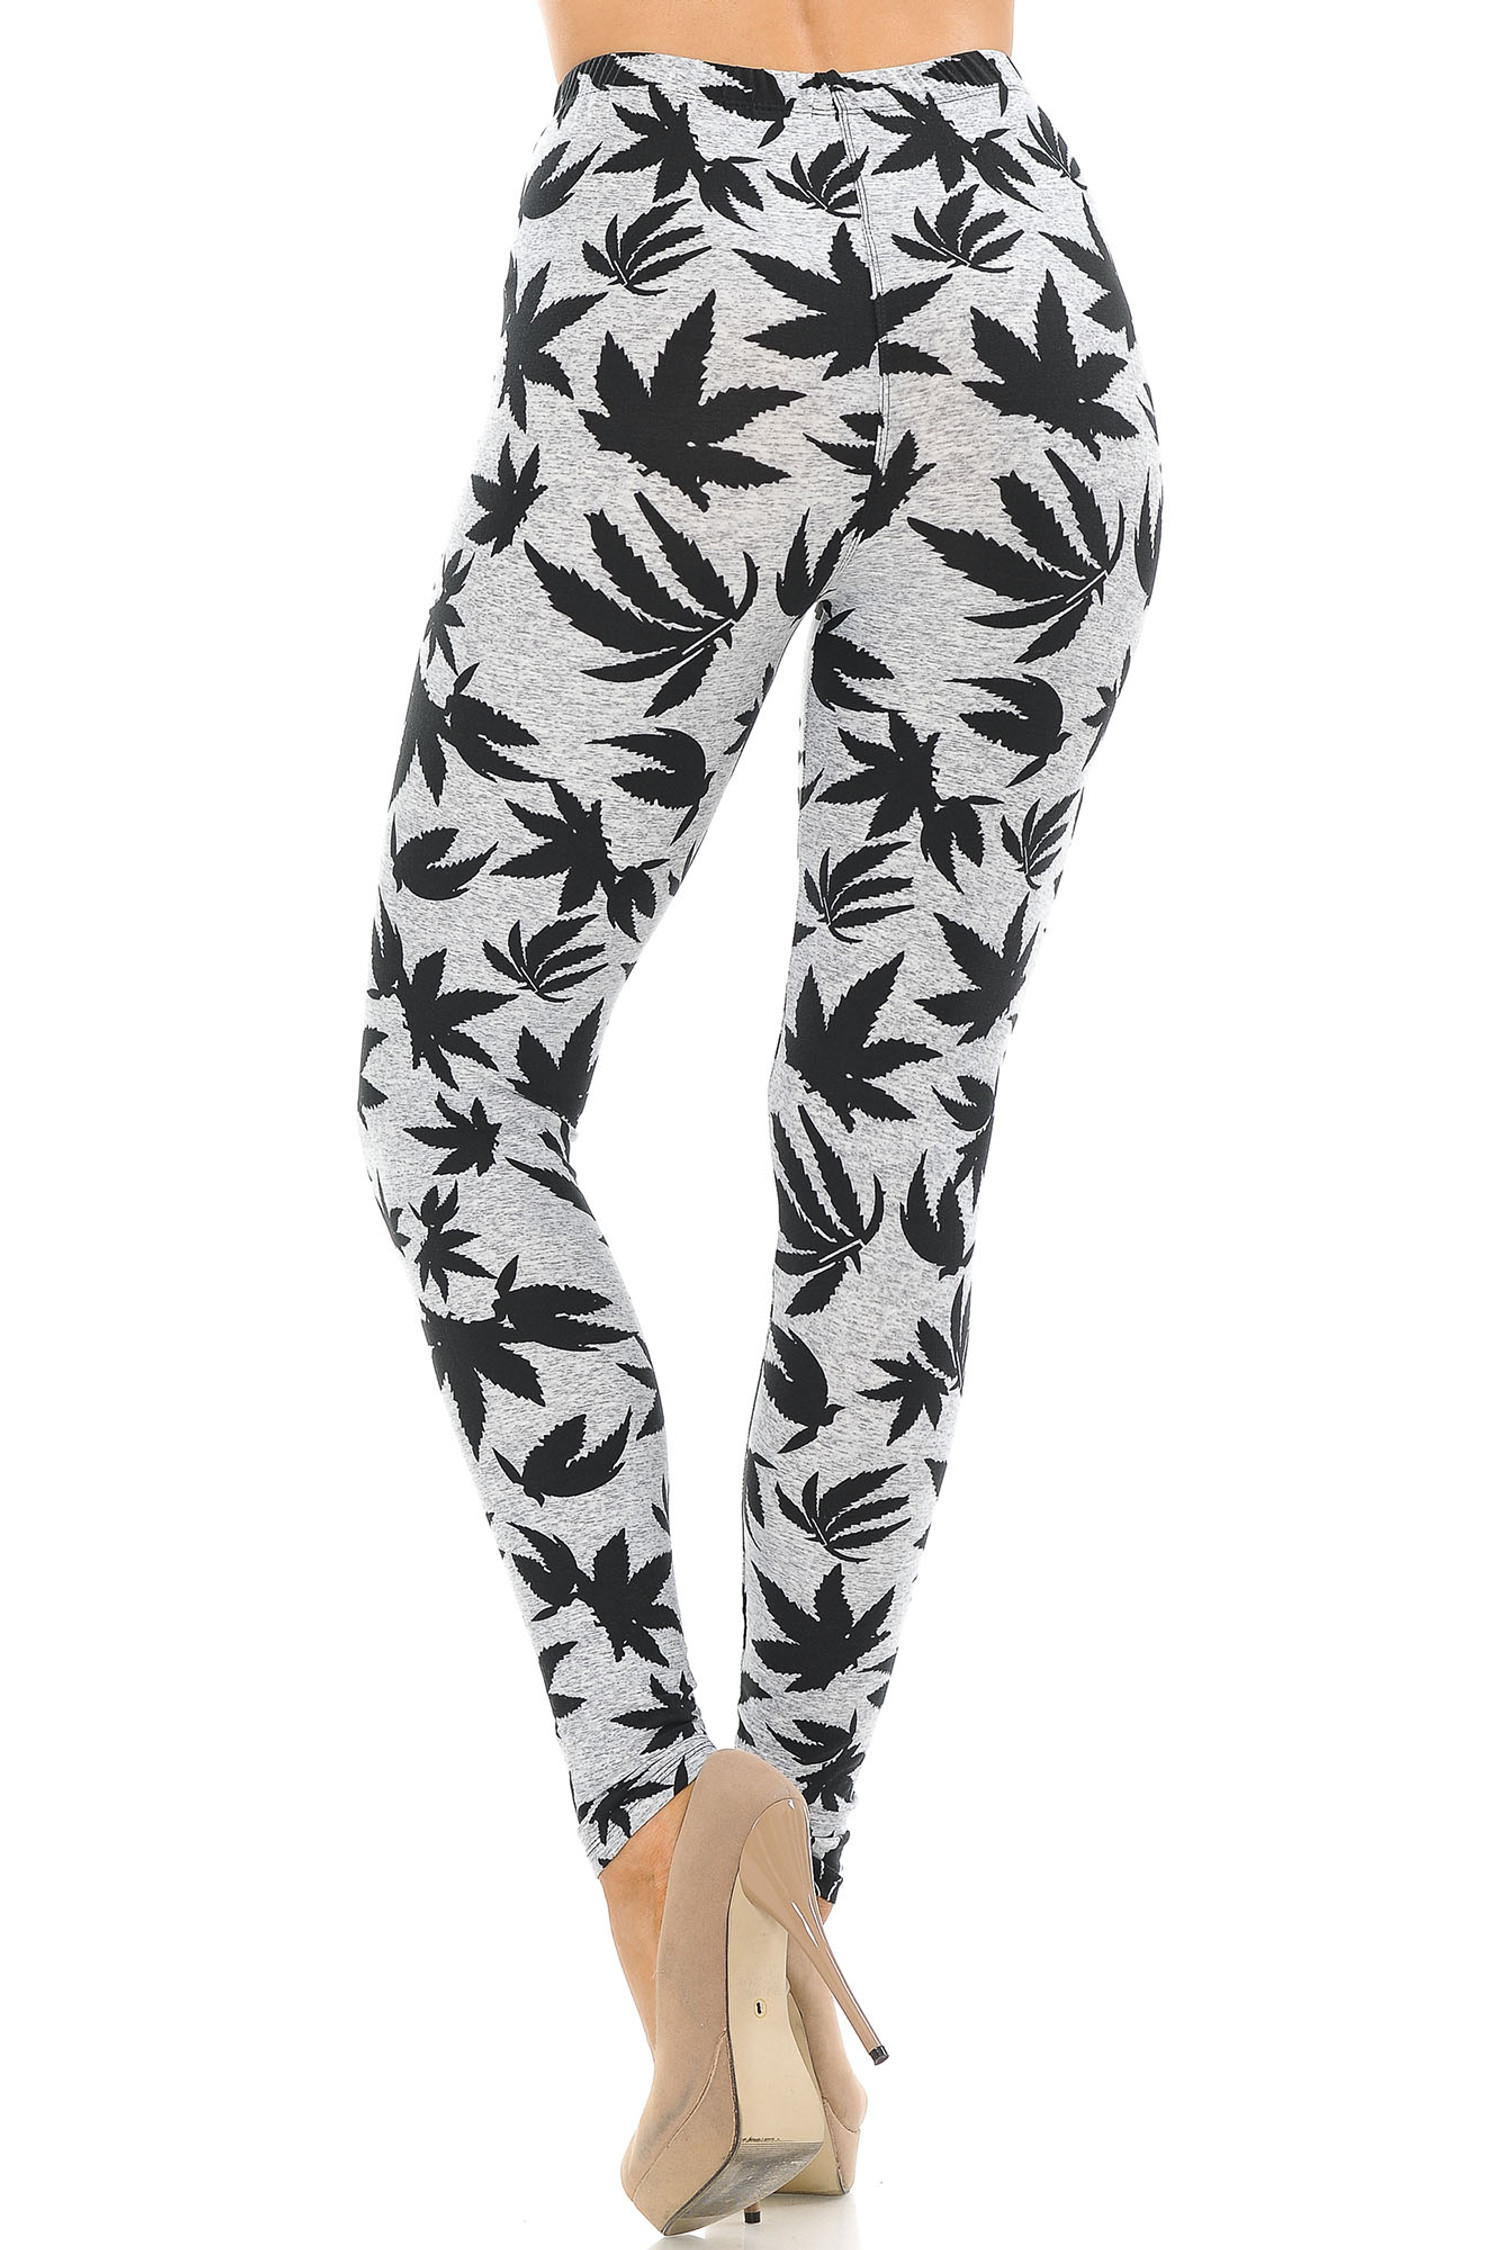 Soft Brushed Solid Heather Grey Marijuana Extra Plus Size Leggings - 3X-5X